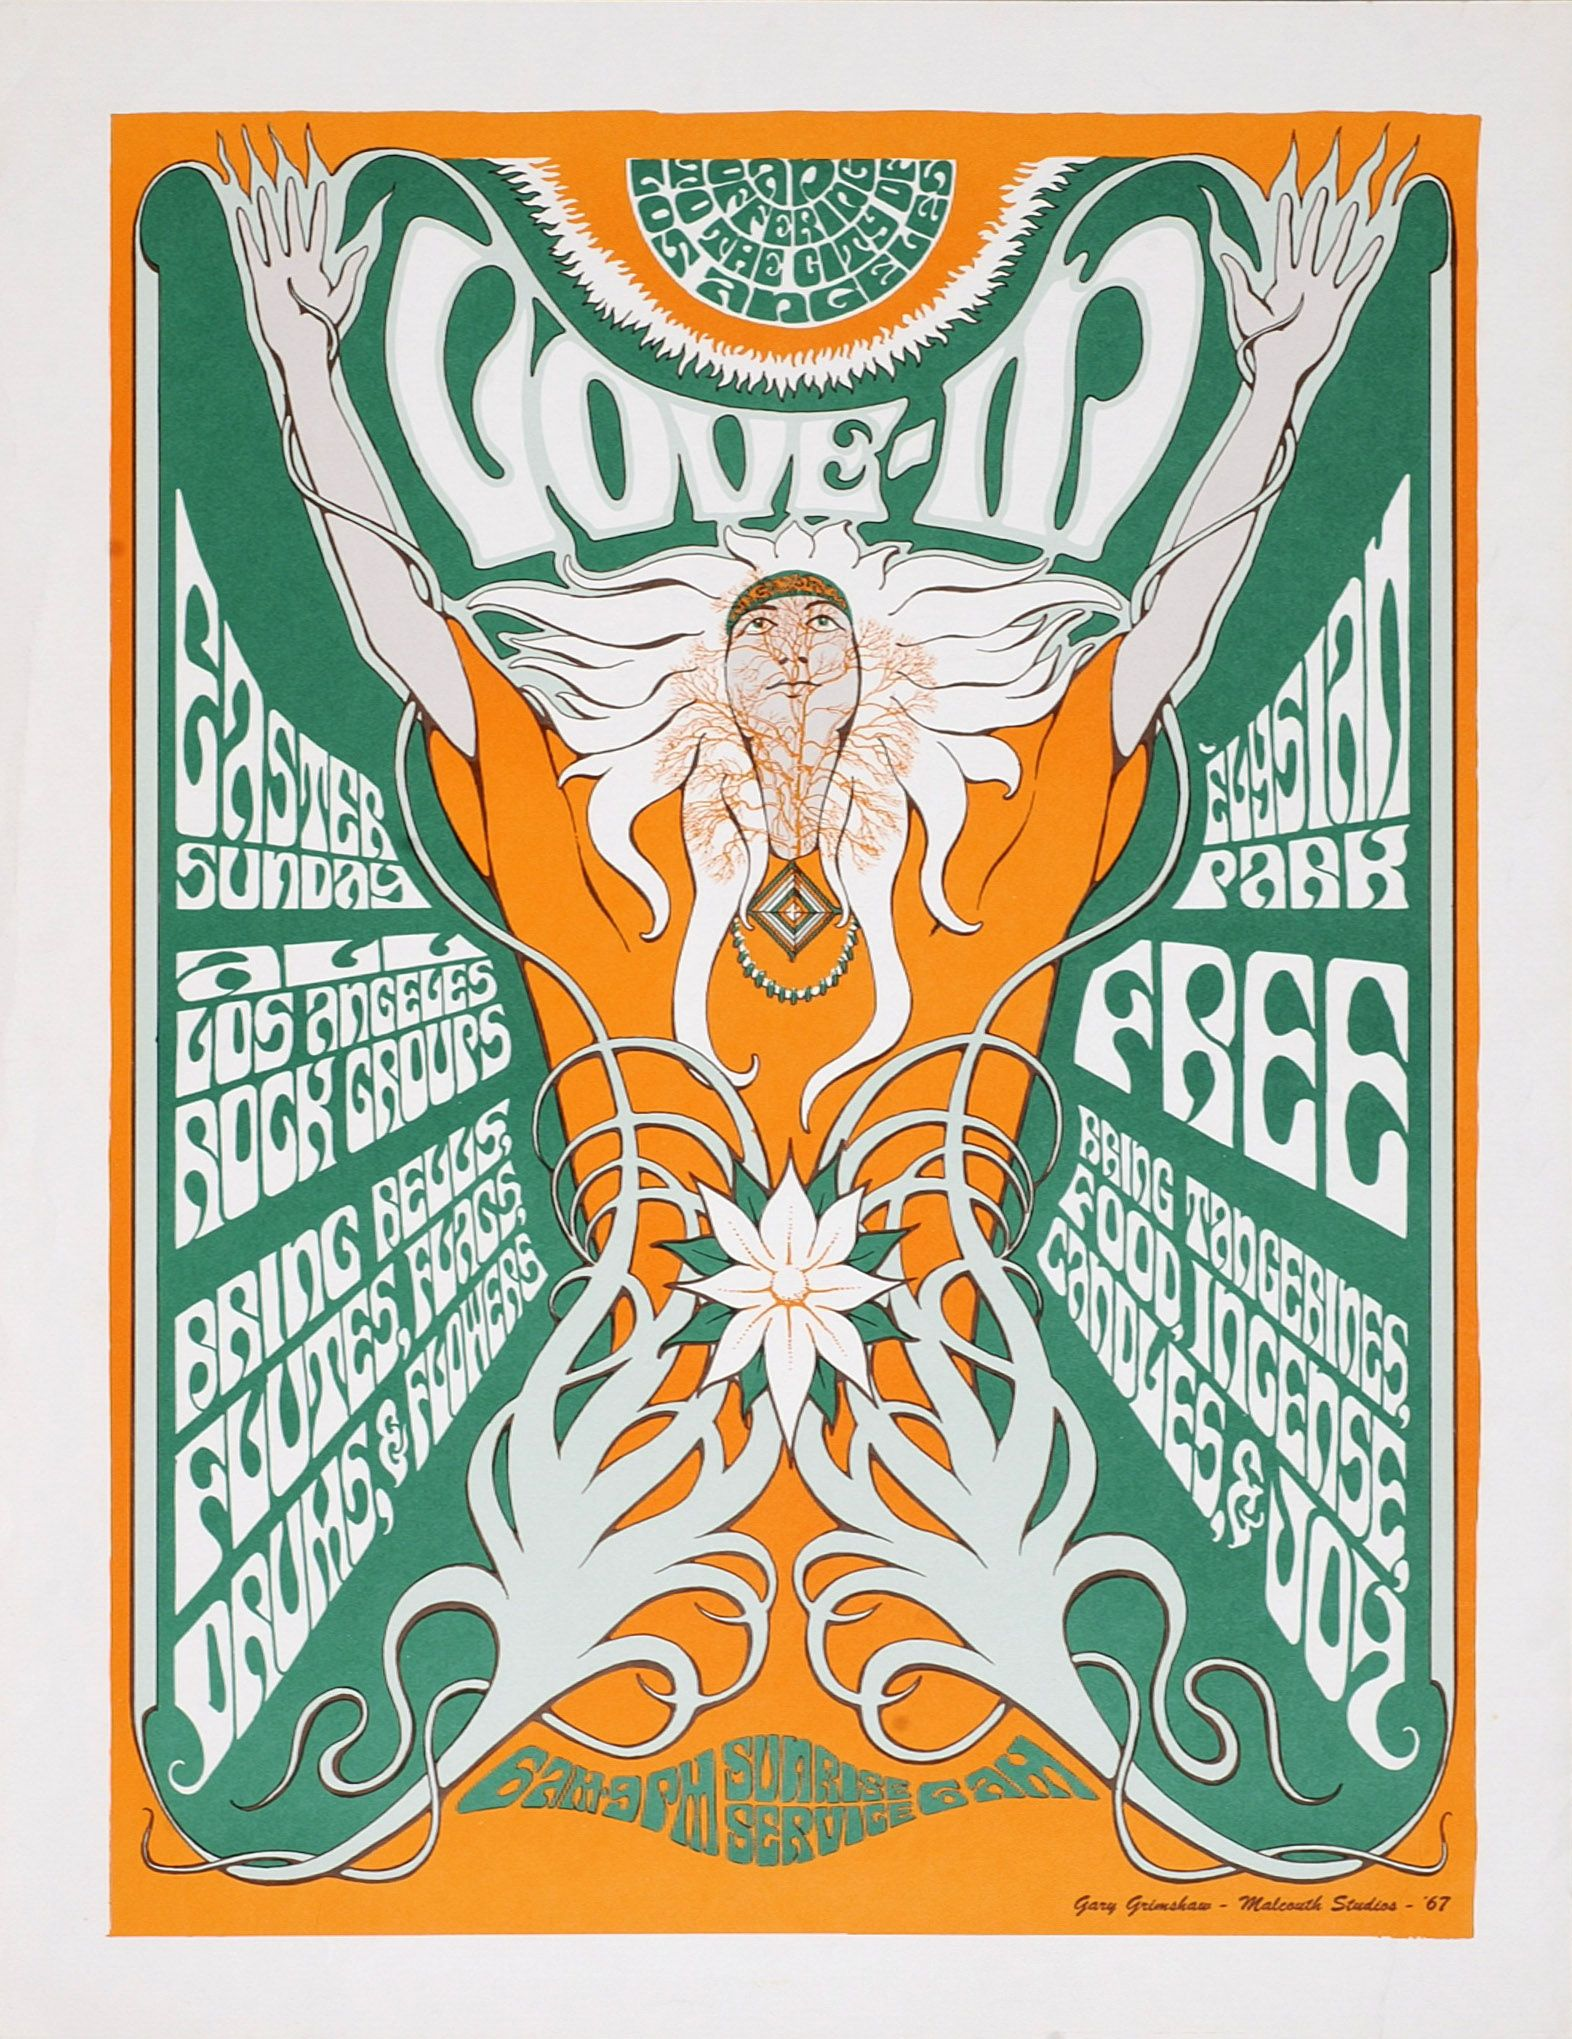 Poster By My Friend Gary Grimshaw The 1960s In Ann Arbor Michigan